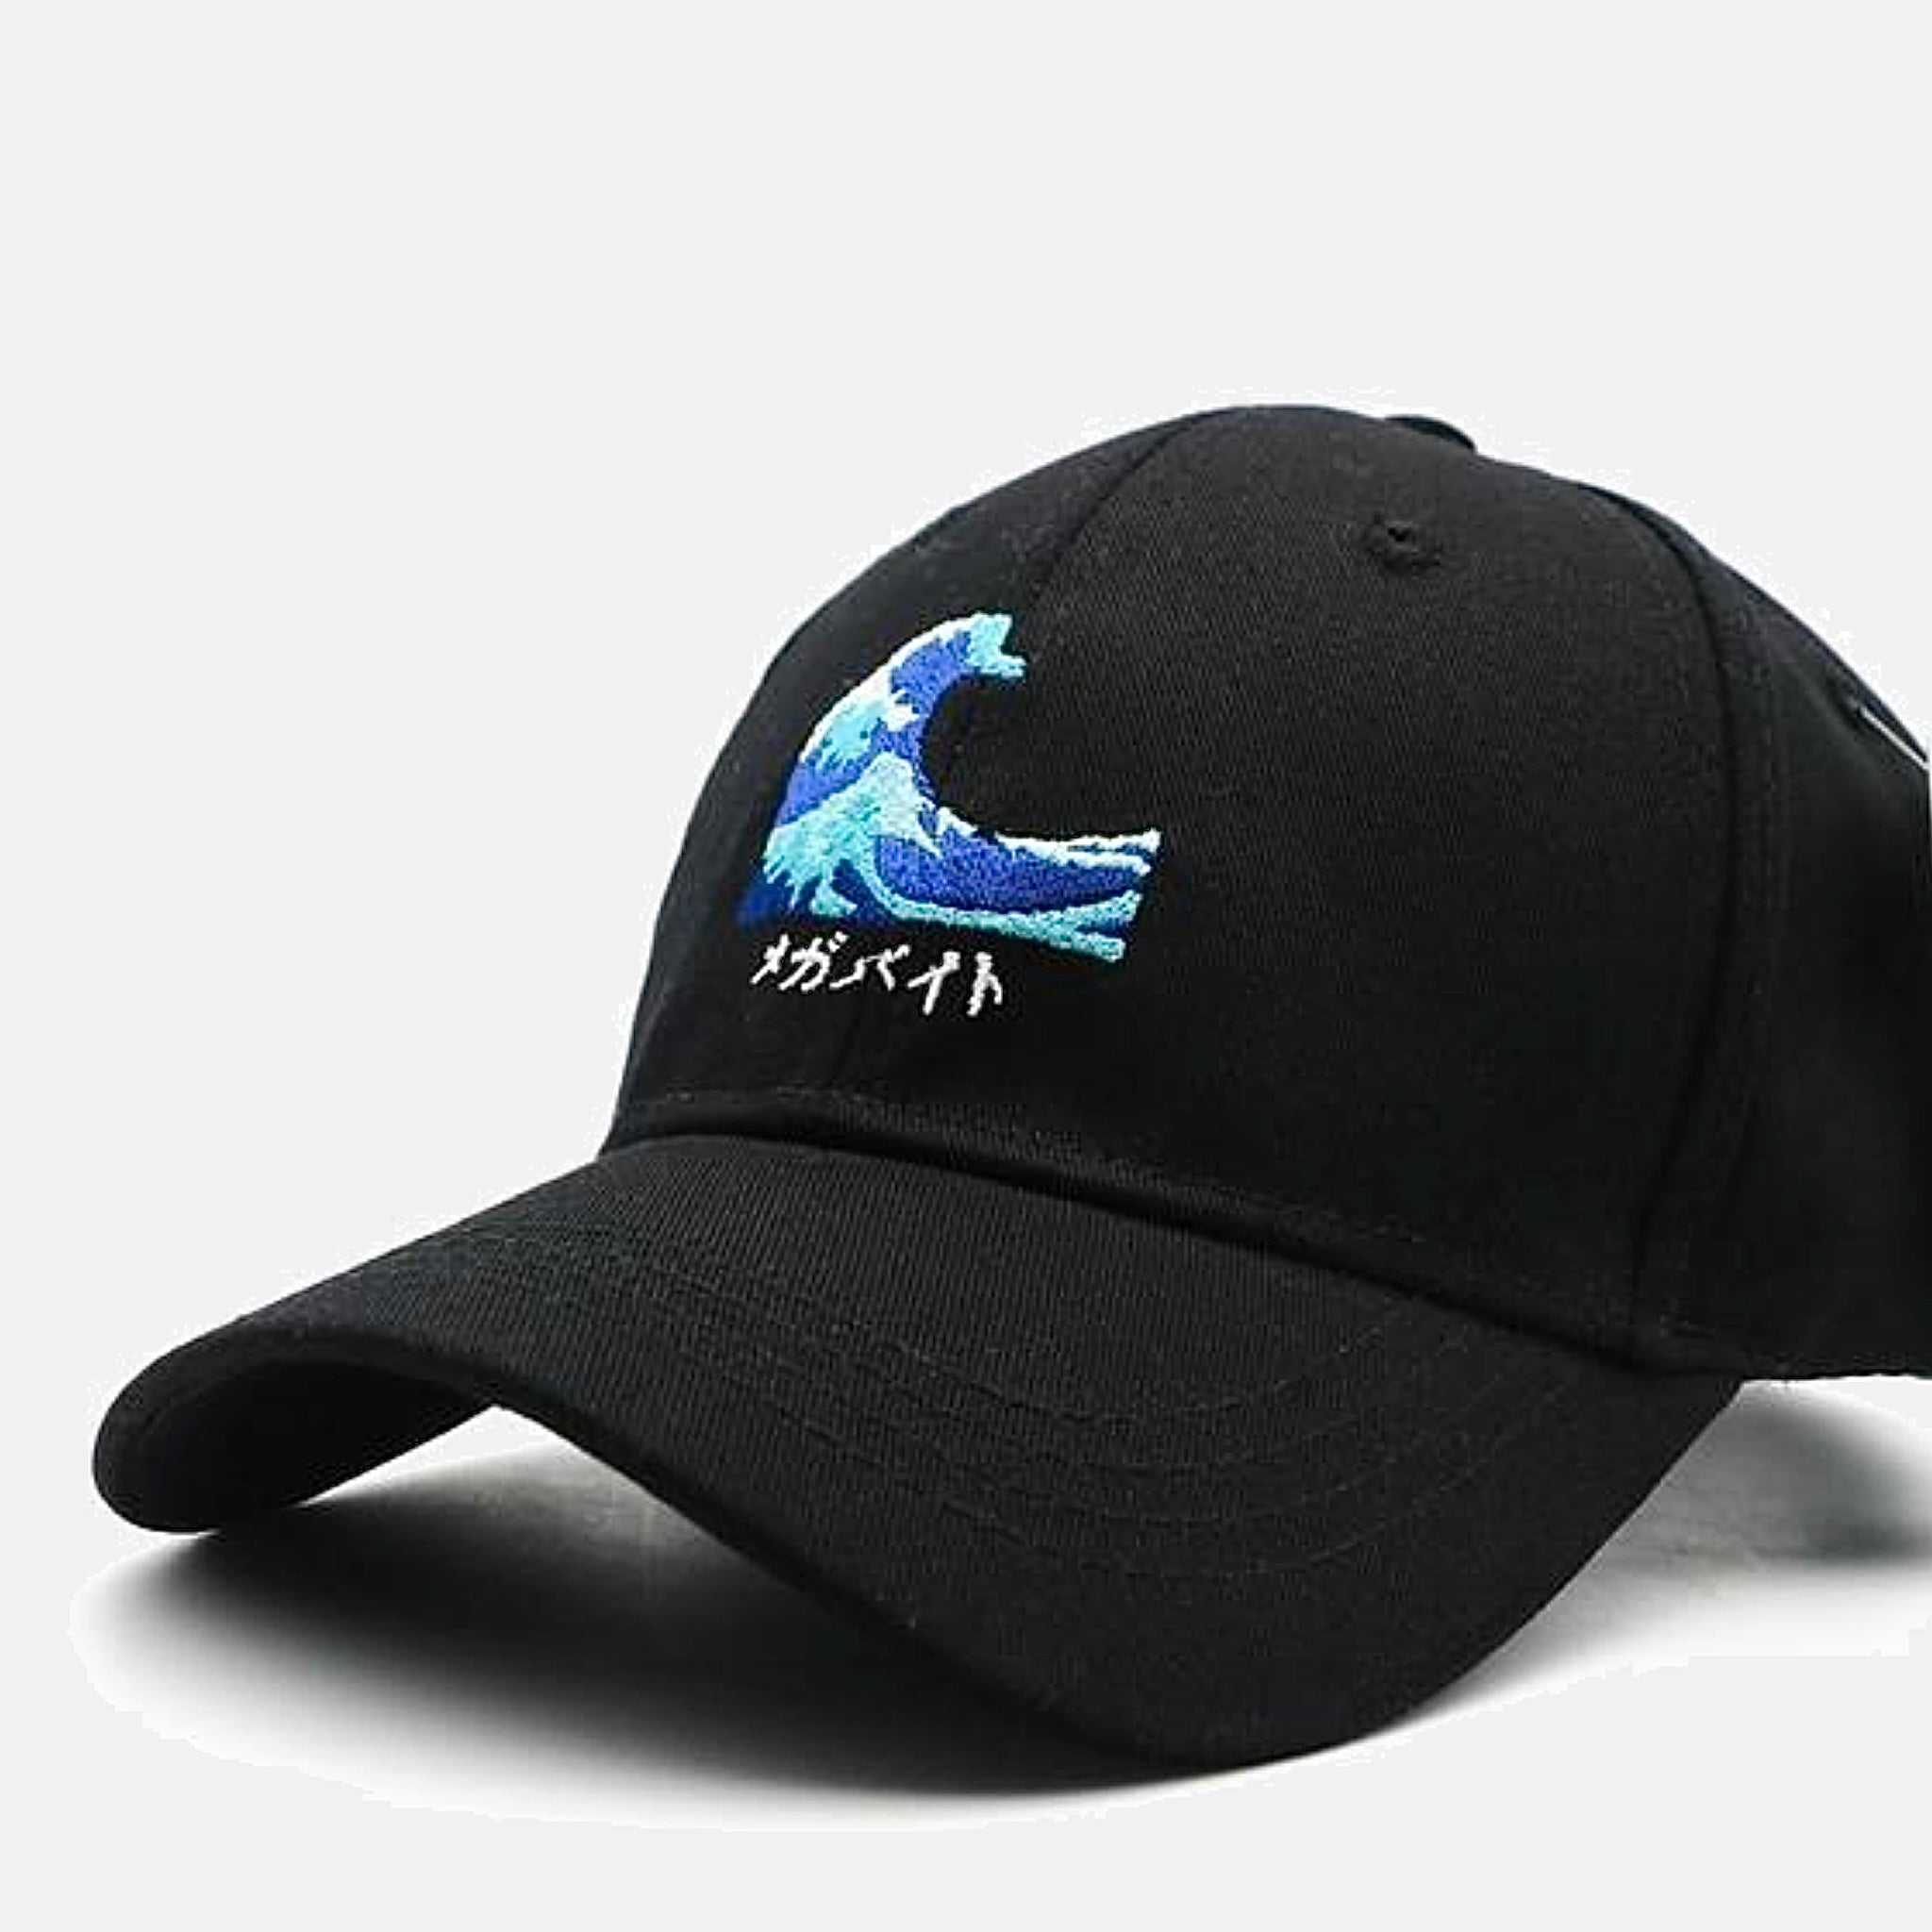 Japanese Harajuku The Wave Embroidery Baseball Cap Trend Black